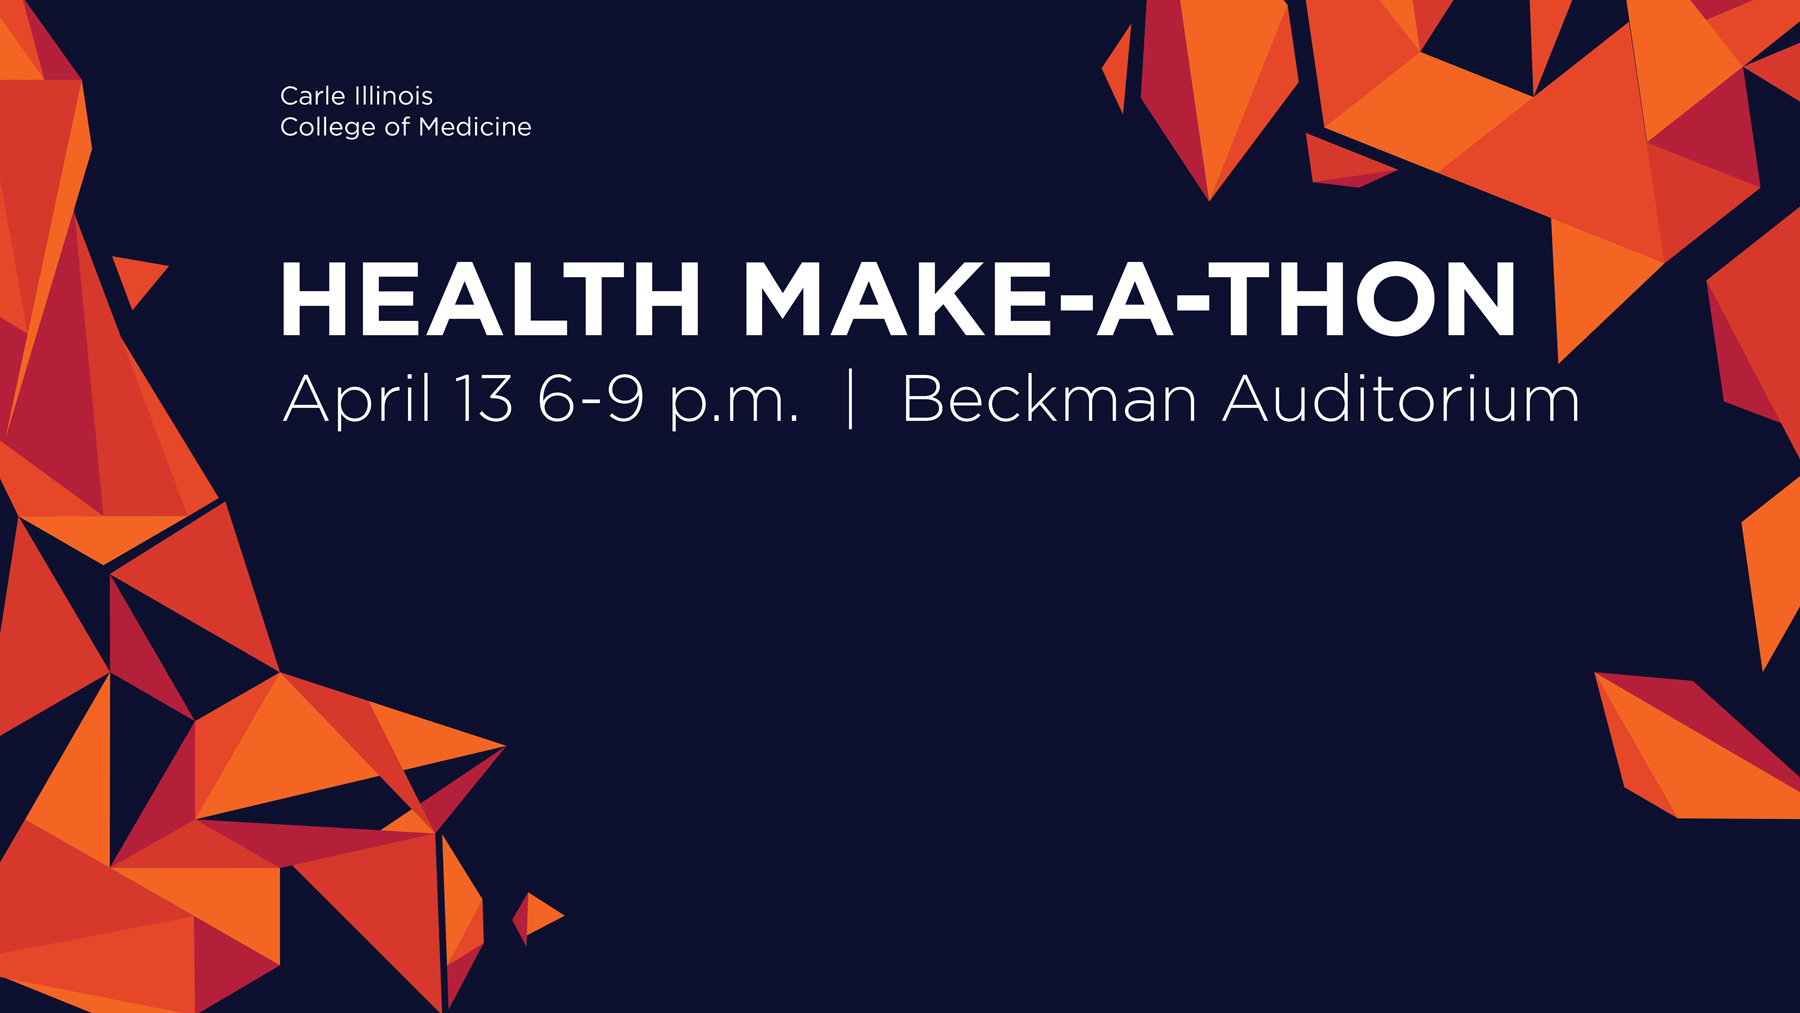 Health make-a-thon title graphic by Kara Sauder